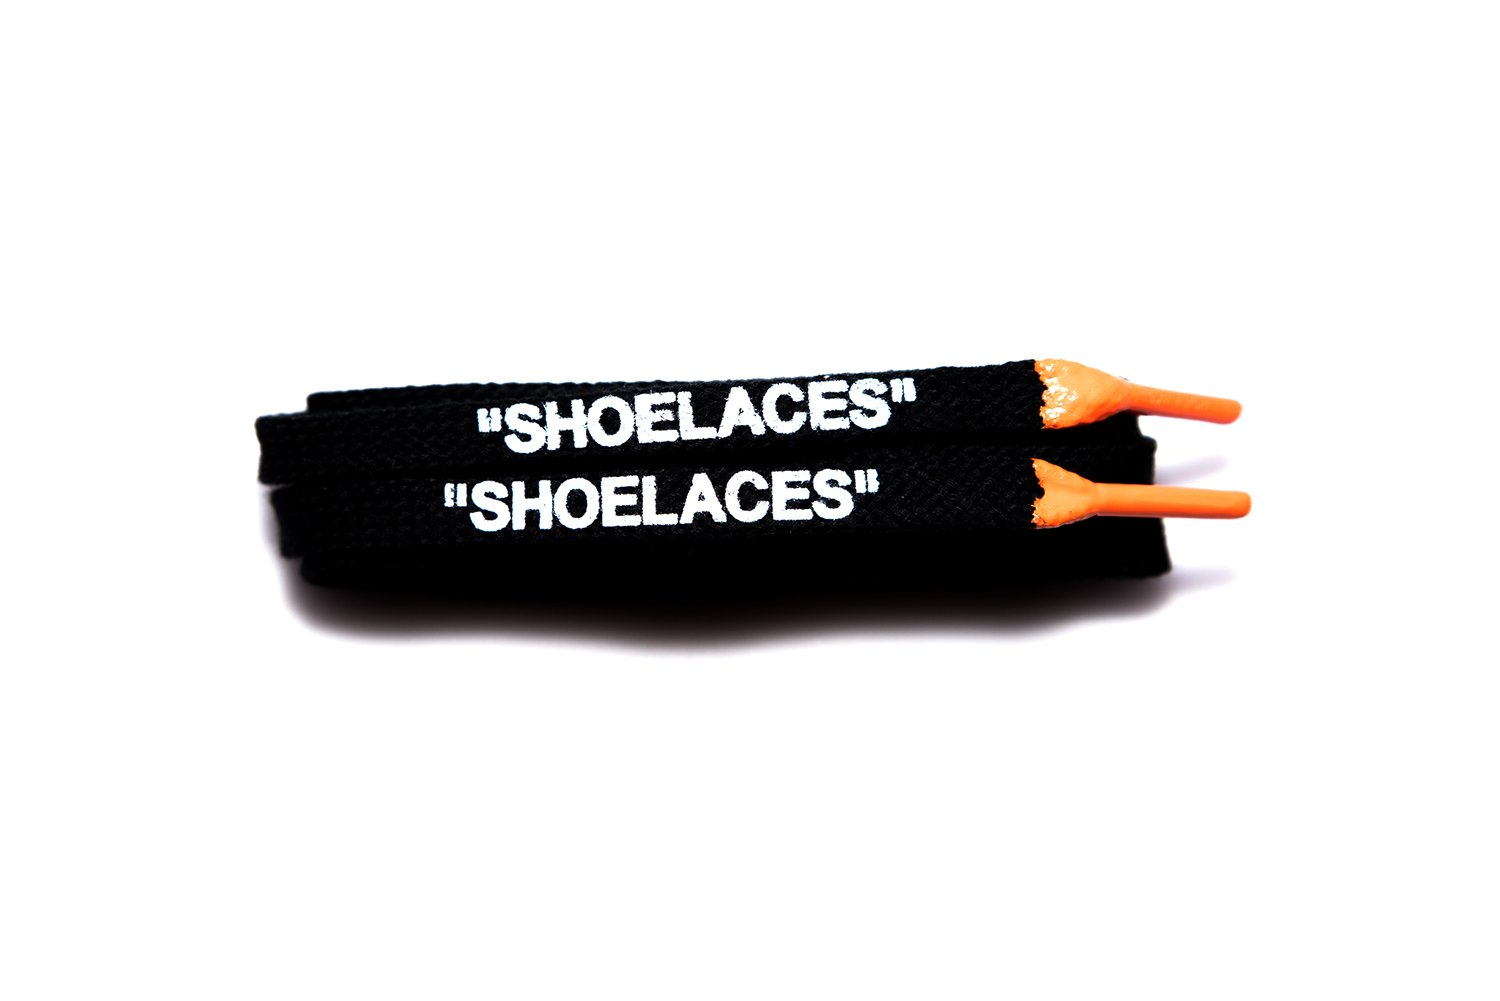 ''Shoelaces'' Custom Printed Shoe Laces with Silicone Tips Oval/Flat Lace Swap Cotton & Polyester Designs